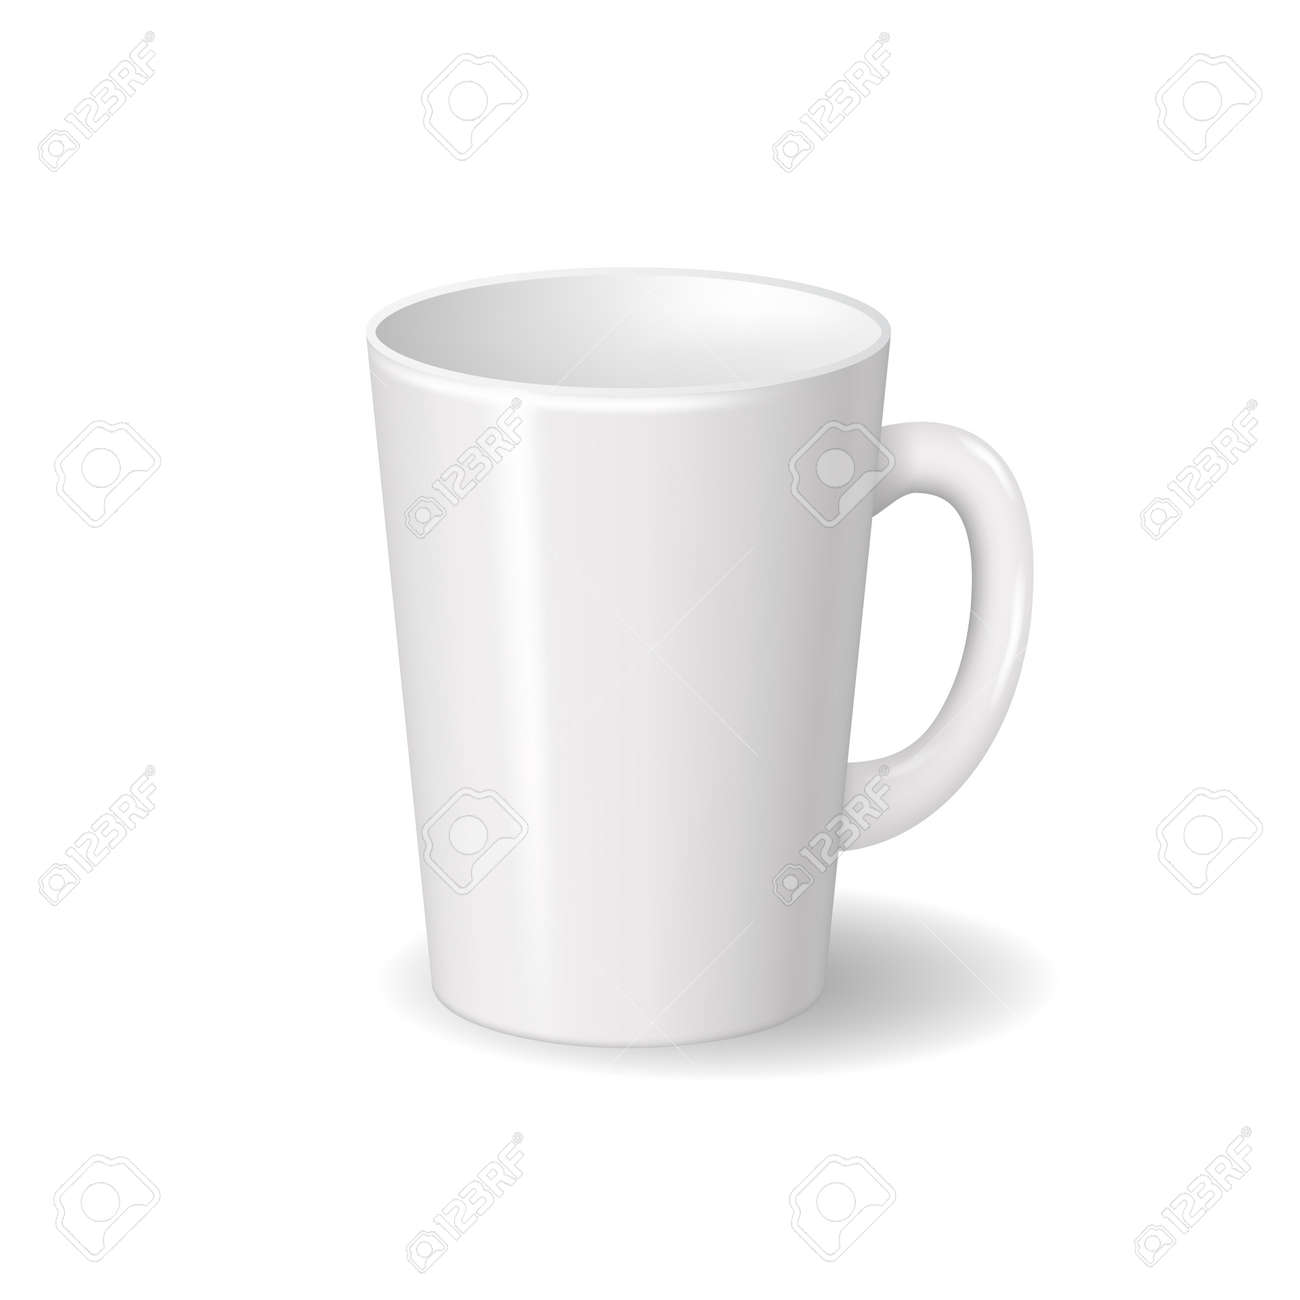 Realistic isolated white ceramic cup with shadows. For drinks, coffee, tea template for mock up brand design. Vector illustration - 126408320